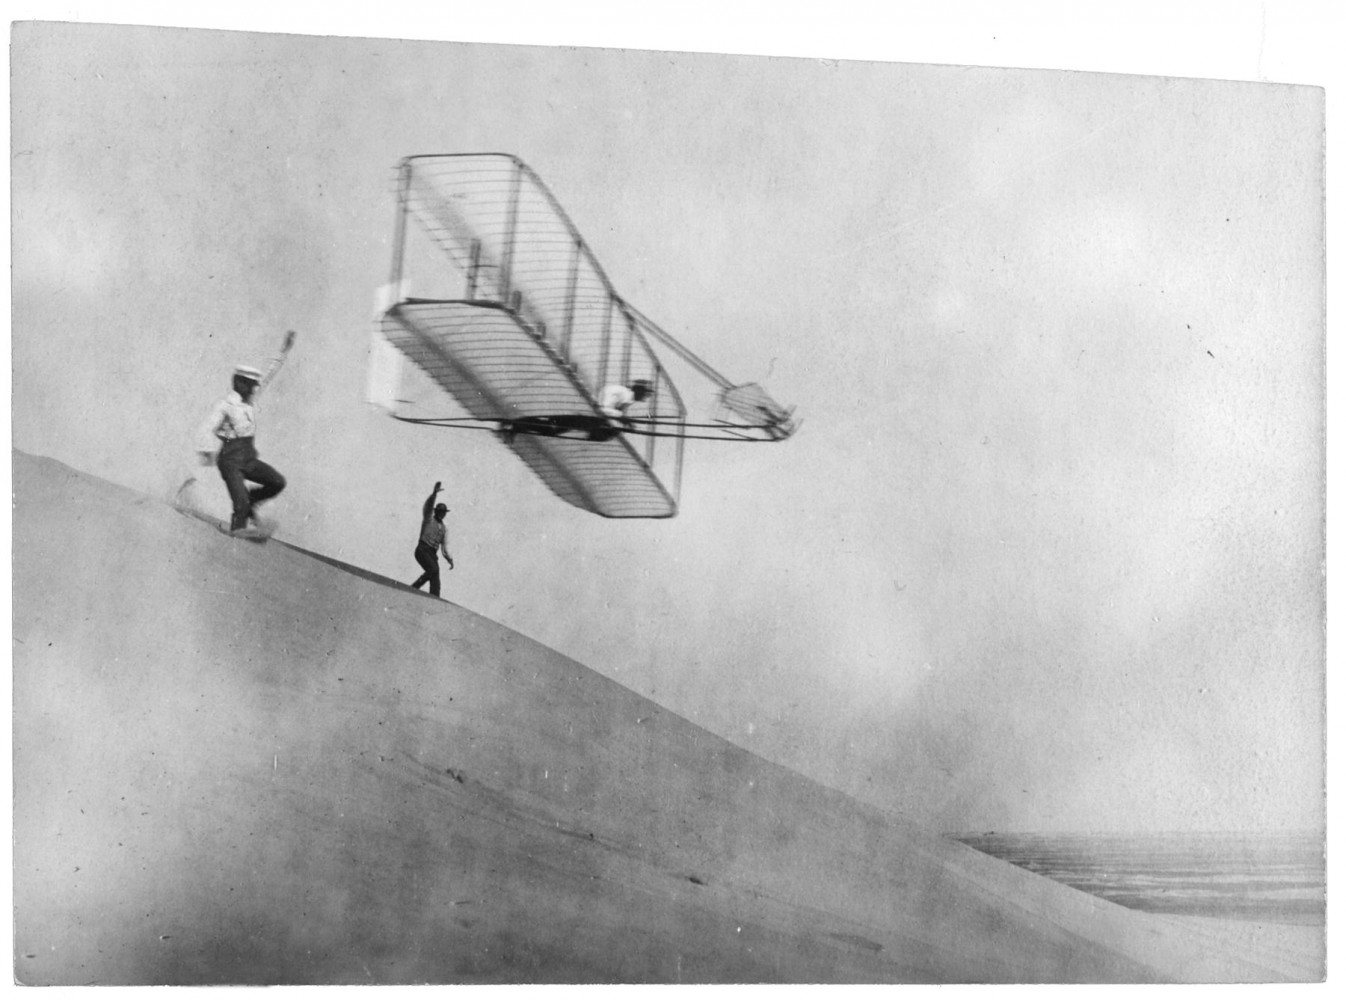 WHY THE WRIGHT BROTHERS GOT IT RIGHT